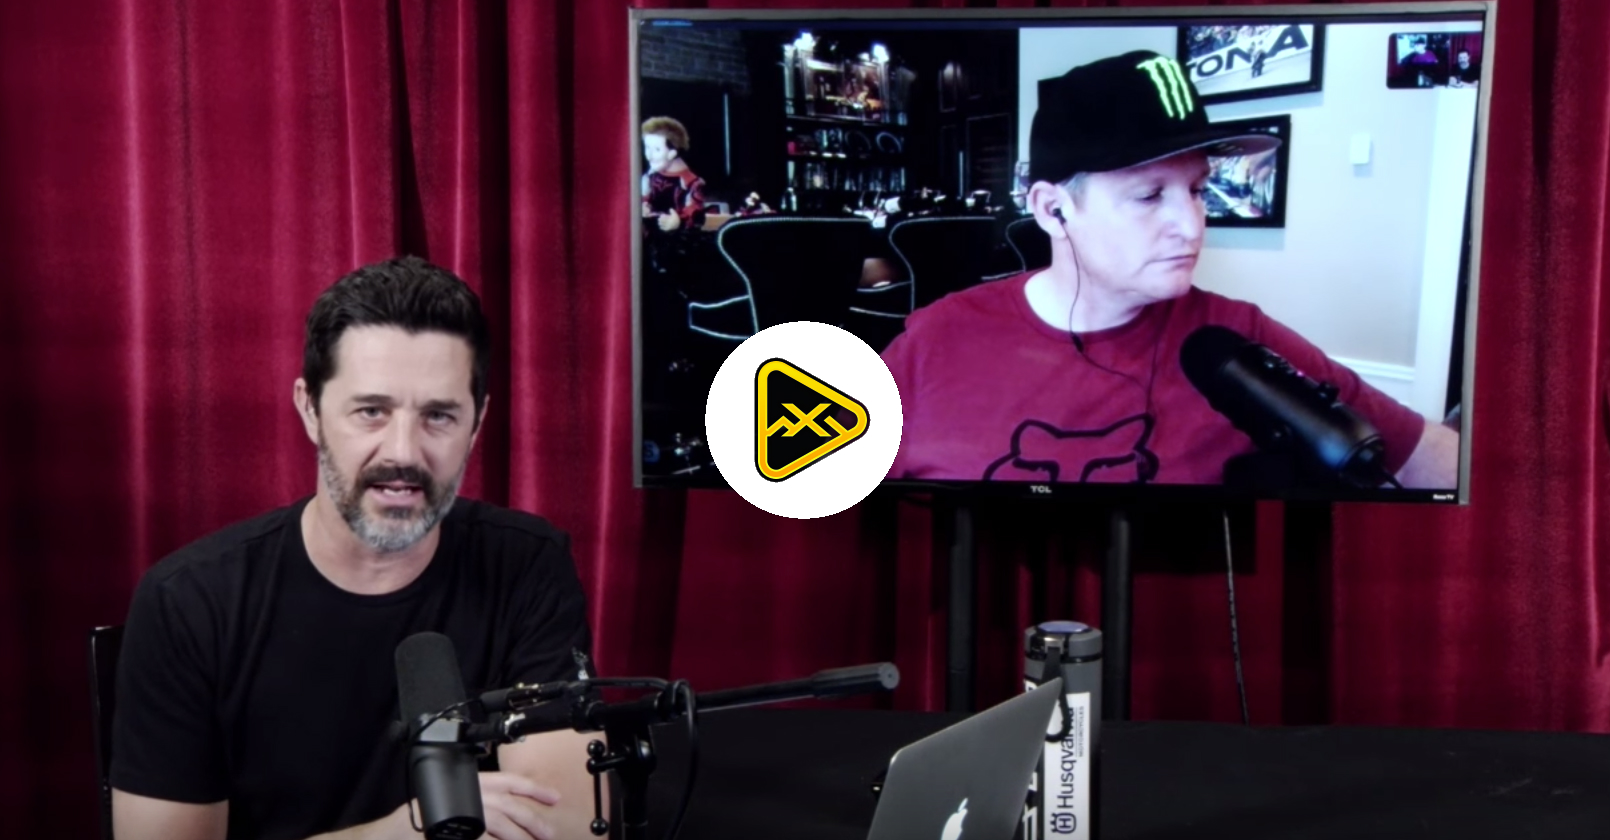 Real Talk 447 Ep 9 w/Ricky Carmichael and Jeff Emig